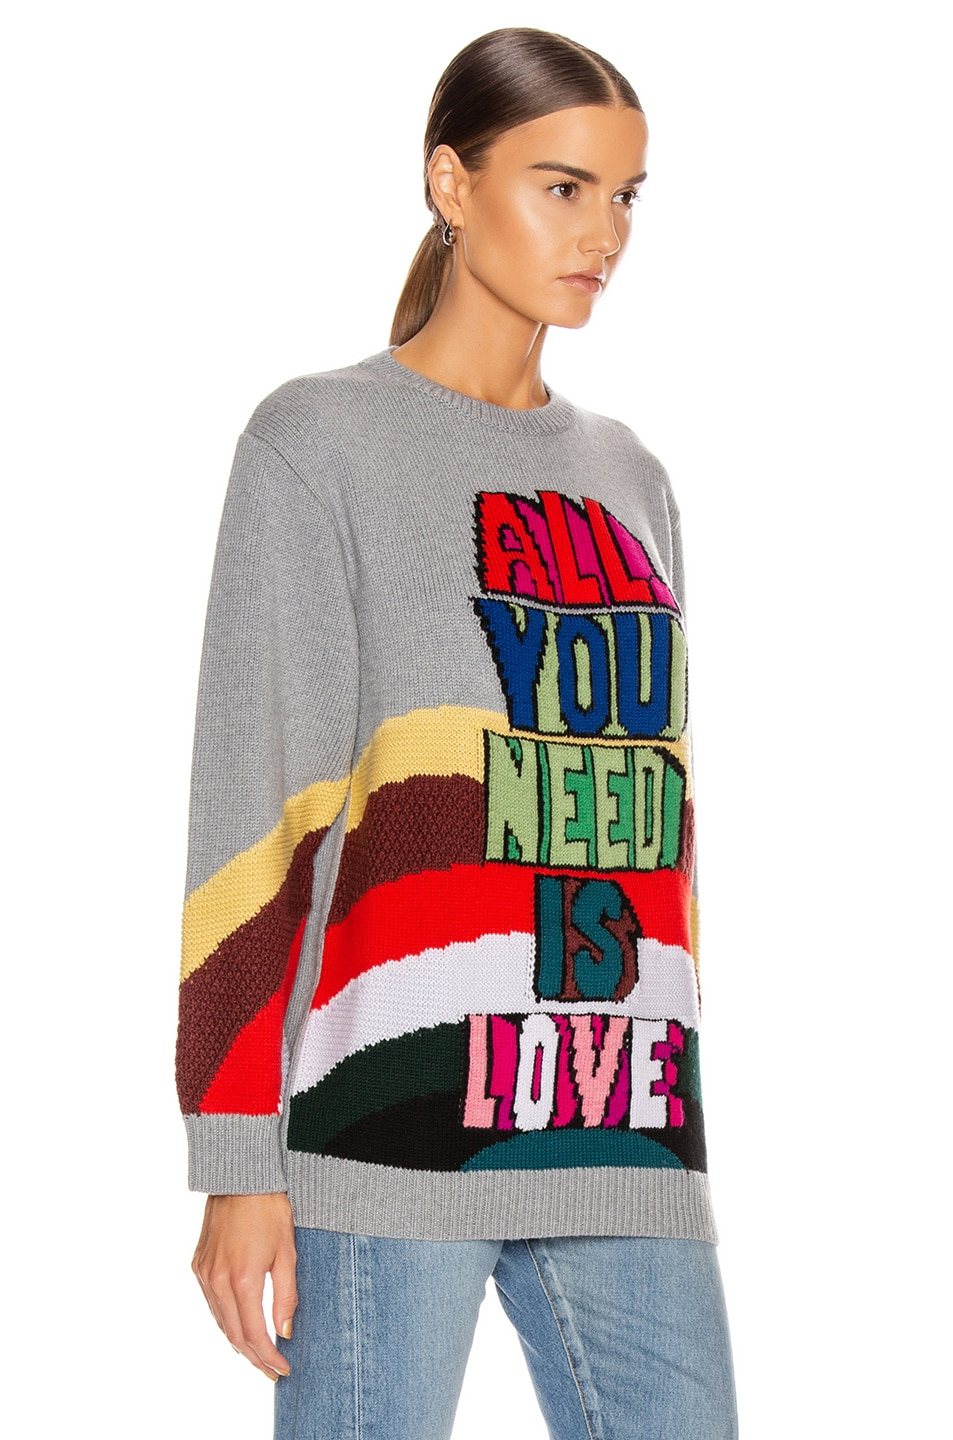 Image 2 of Stella McCartney All You Need Is Love Sweater in Grey Multicolor